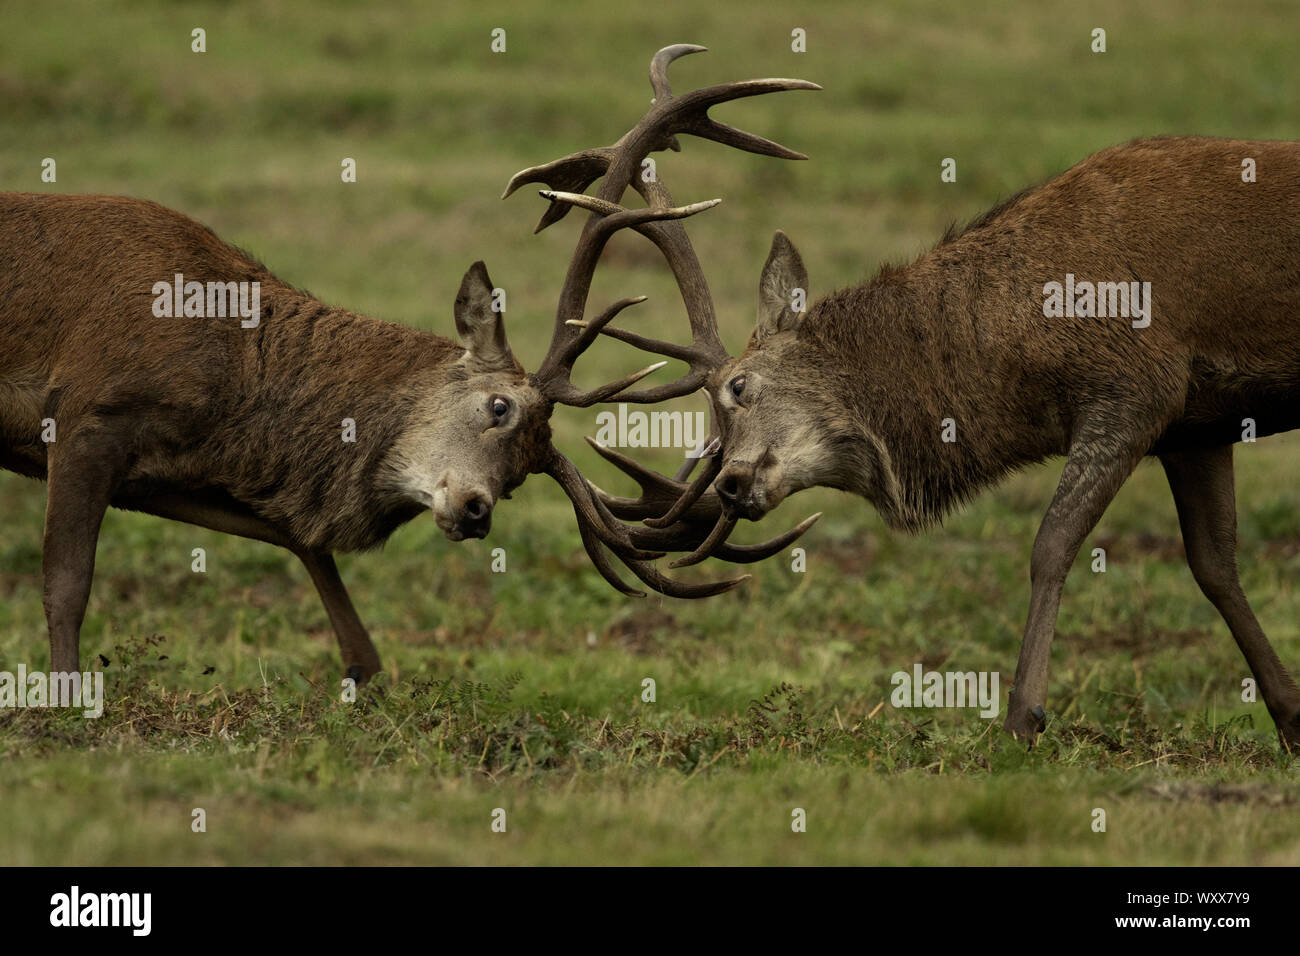 Two Red Deer stags fight during the rut in the Peak District National Park, UK. Stock Photo